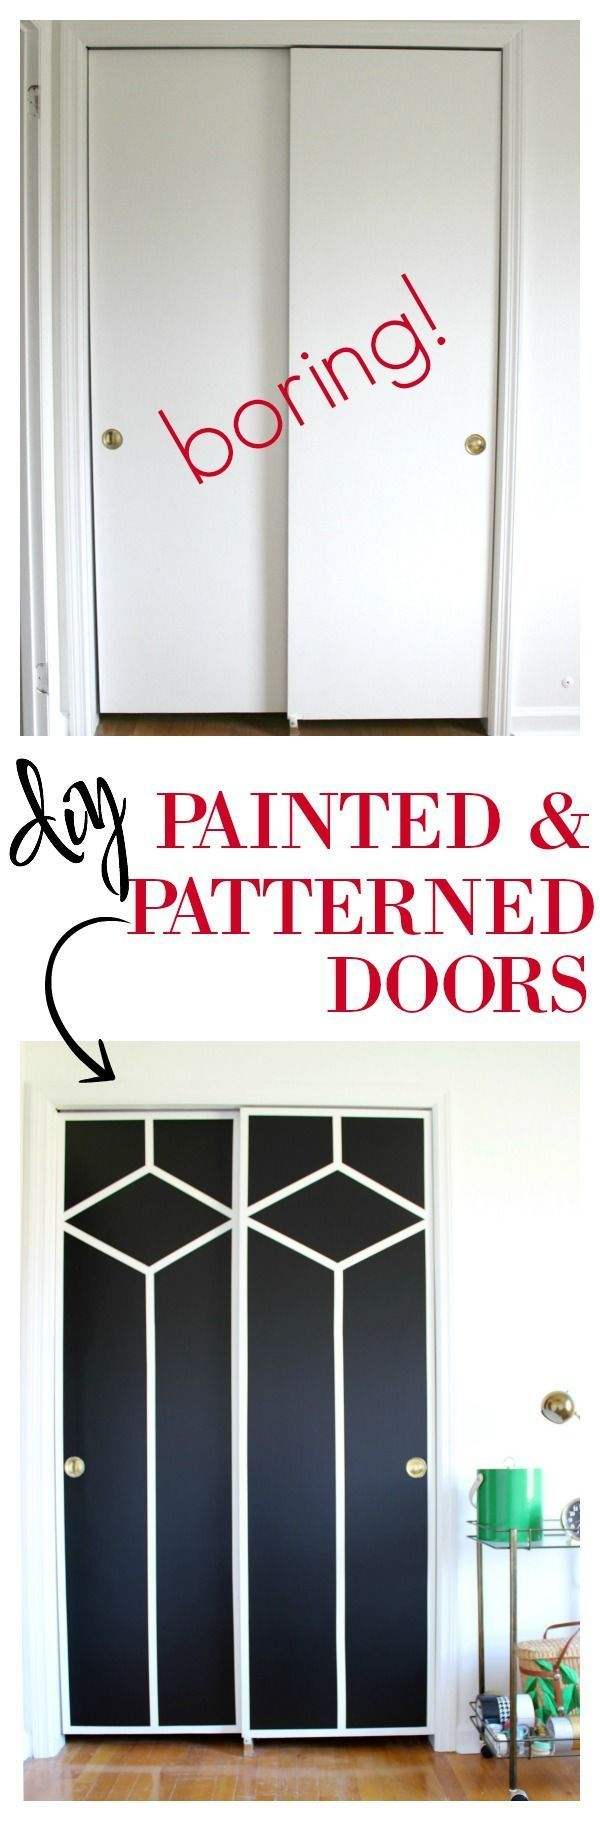 396 Best Moldings And Doors Images On Pinterest | Wood, Future House And  Home Ideas